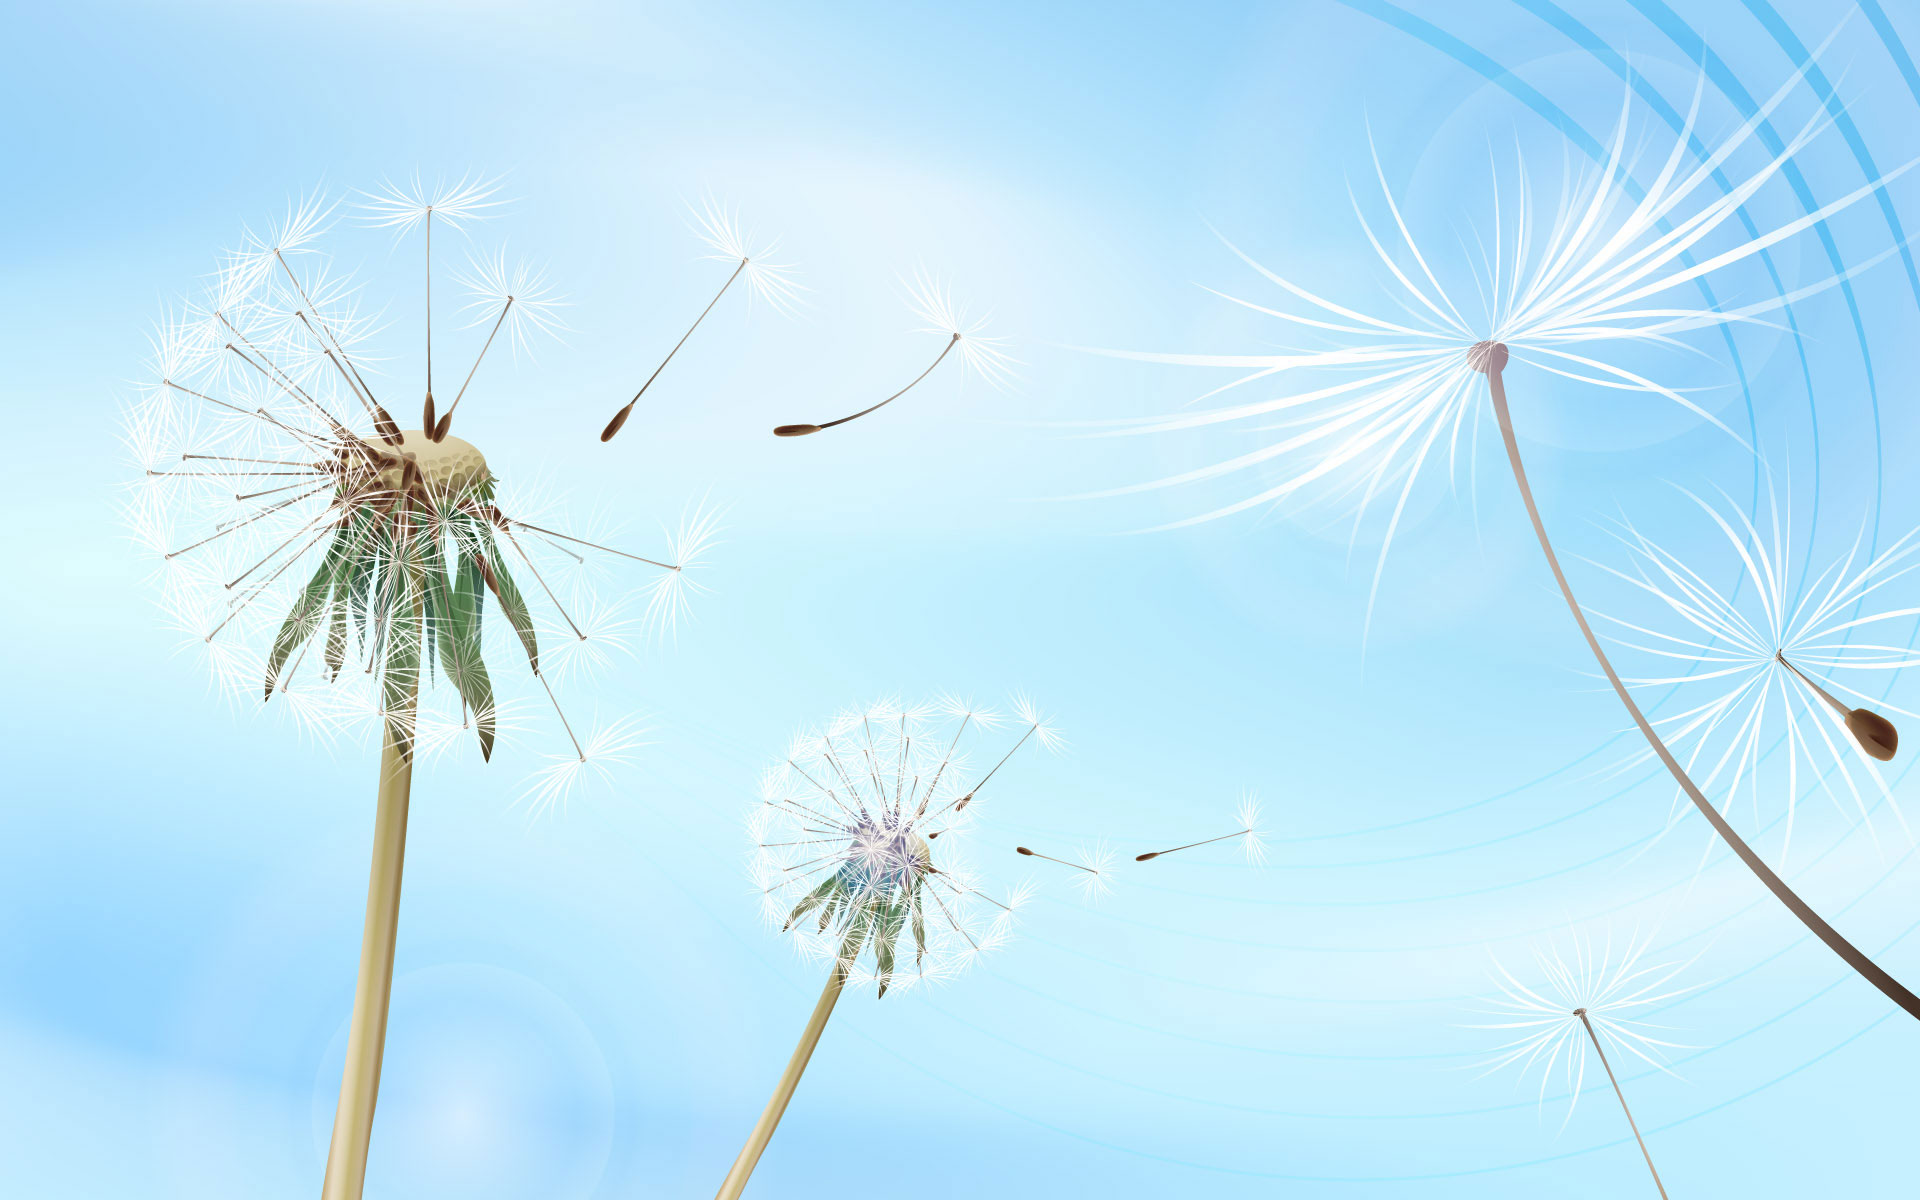 Dandelion flying desktop wallpaper Desktop Background Scenery 1920x1200